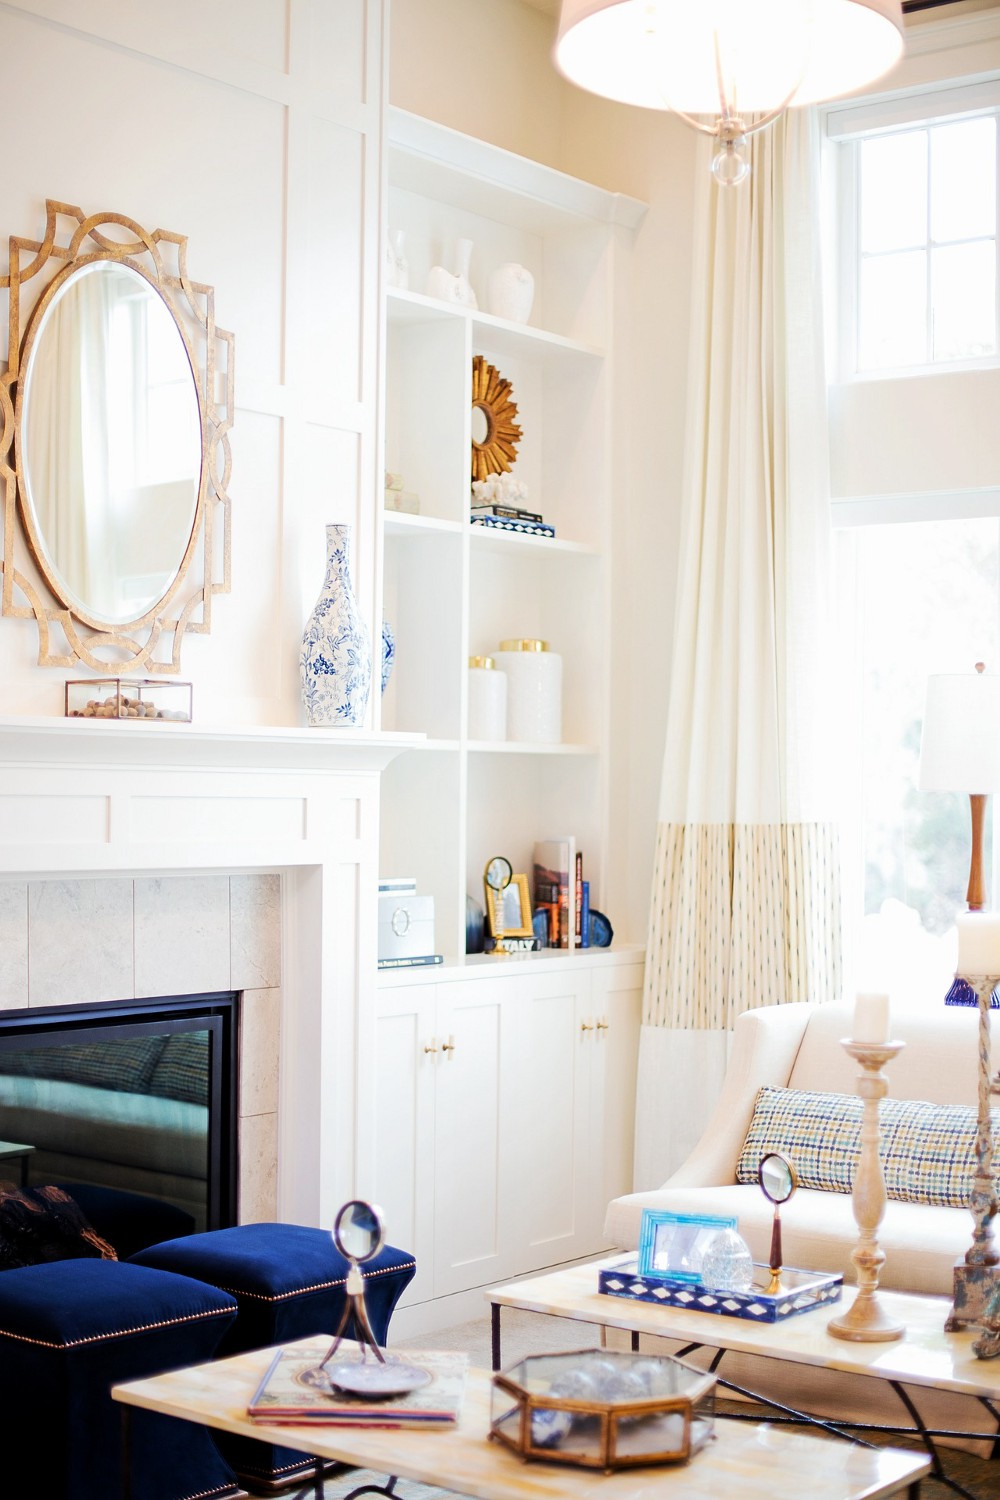 Bright and cheerful living room with white walls and cabinetry and blue and gold decor.